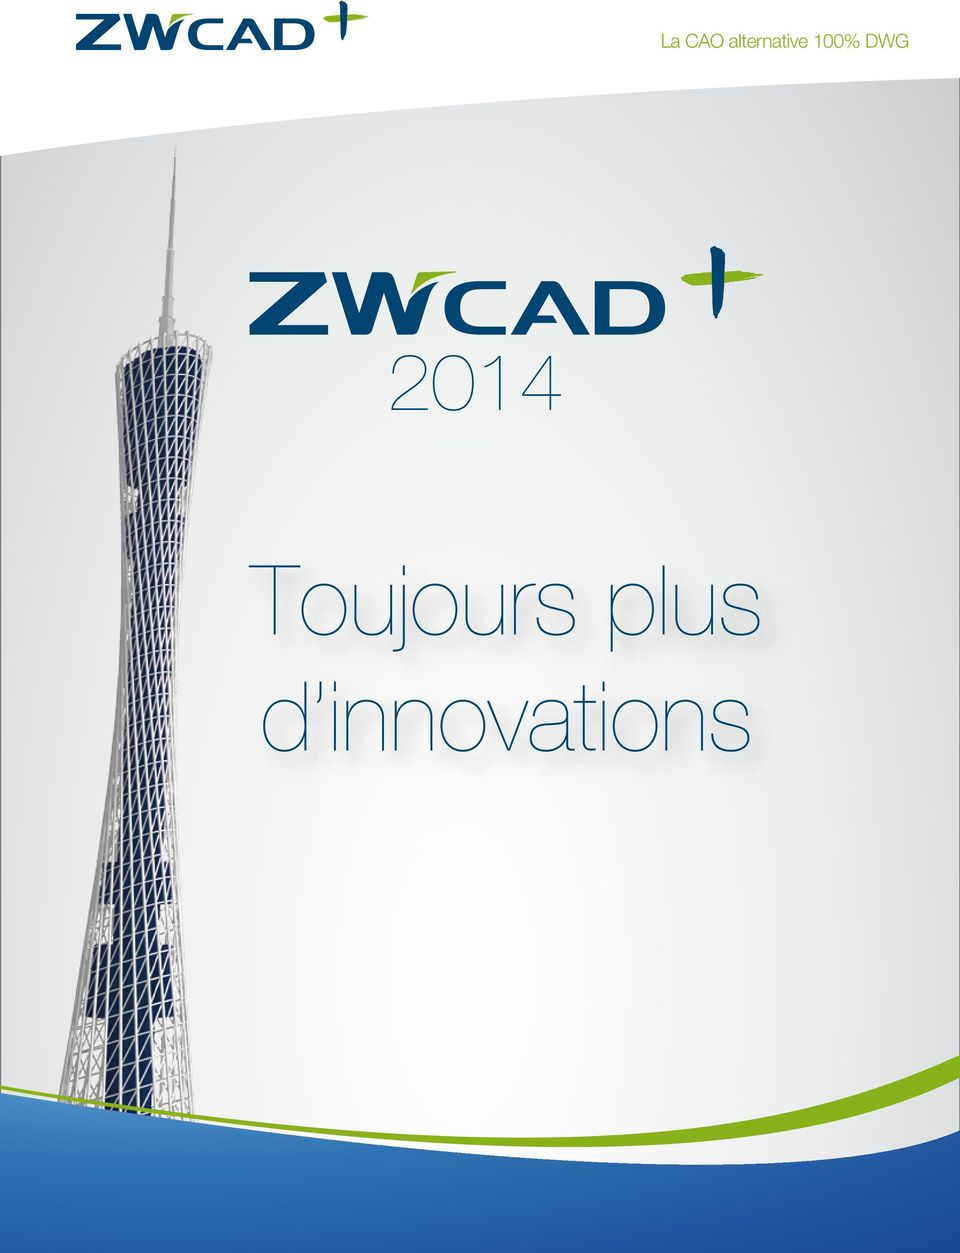 DWG CAD 2014 Toujours